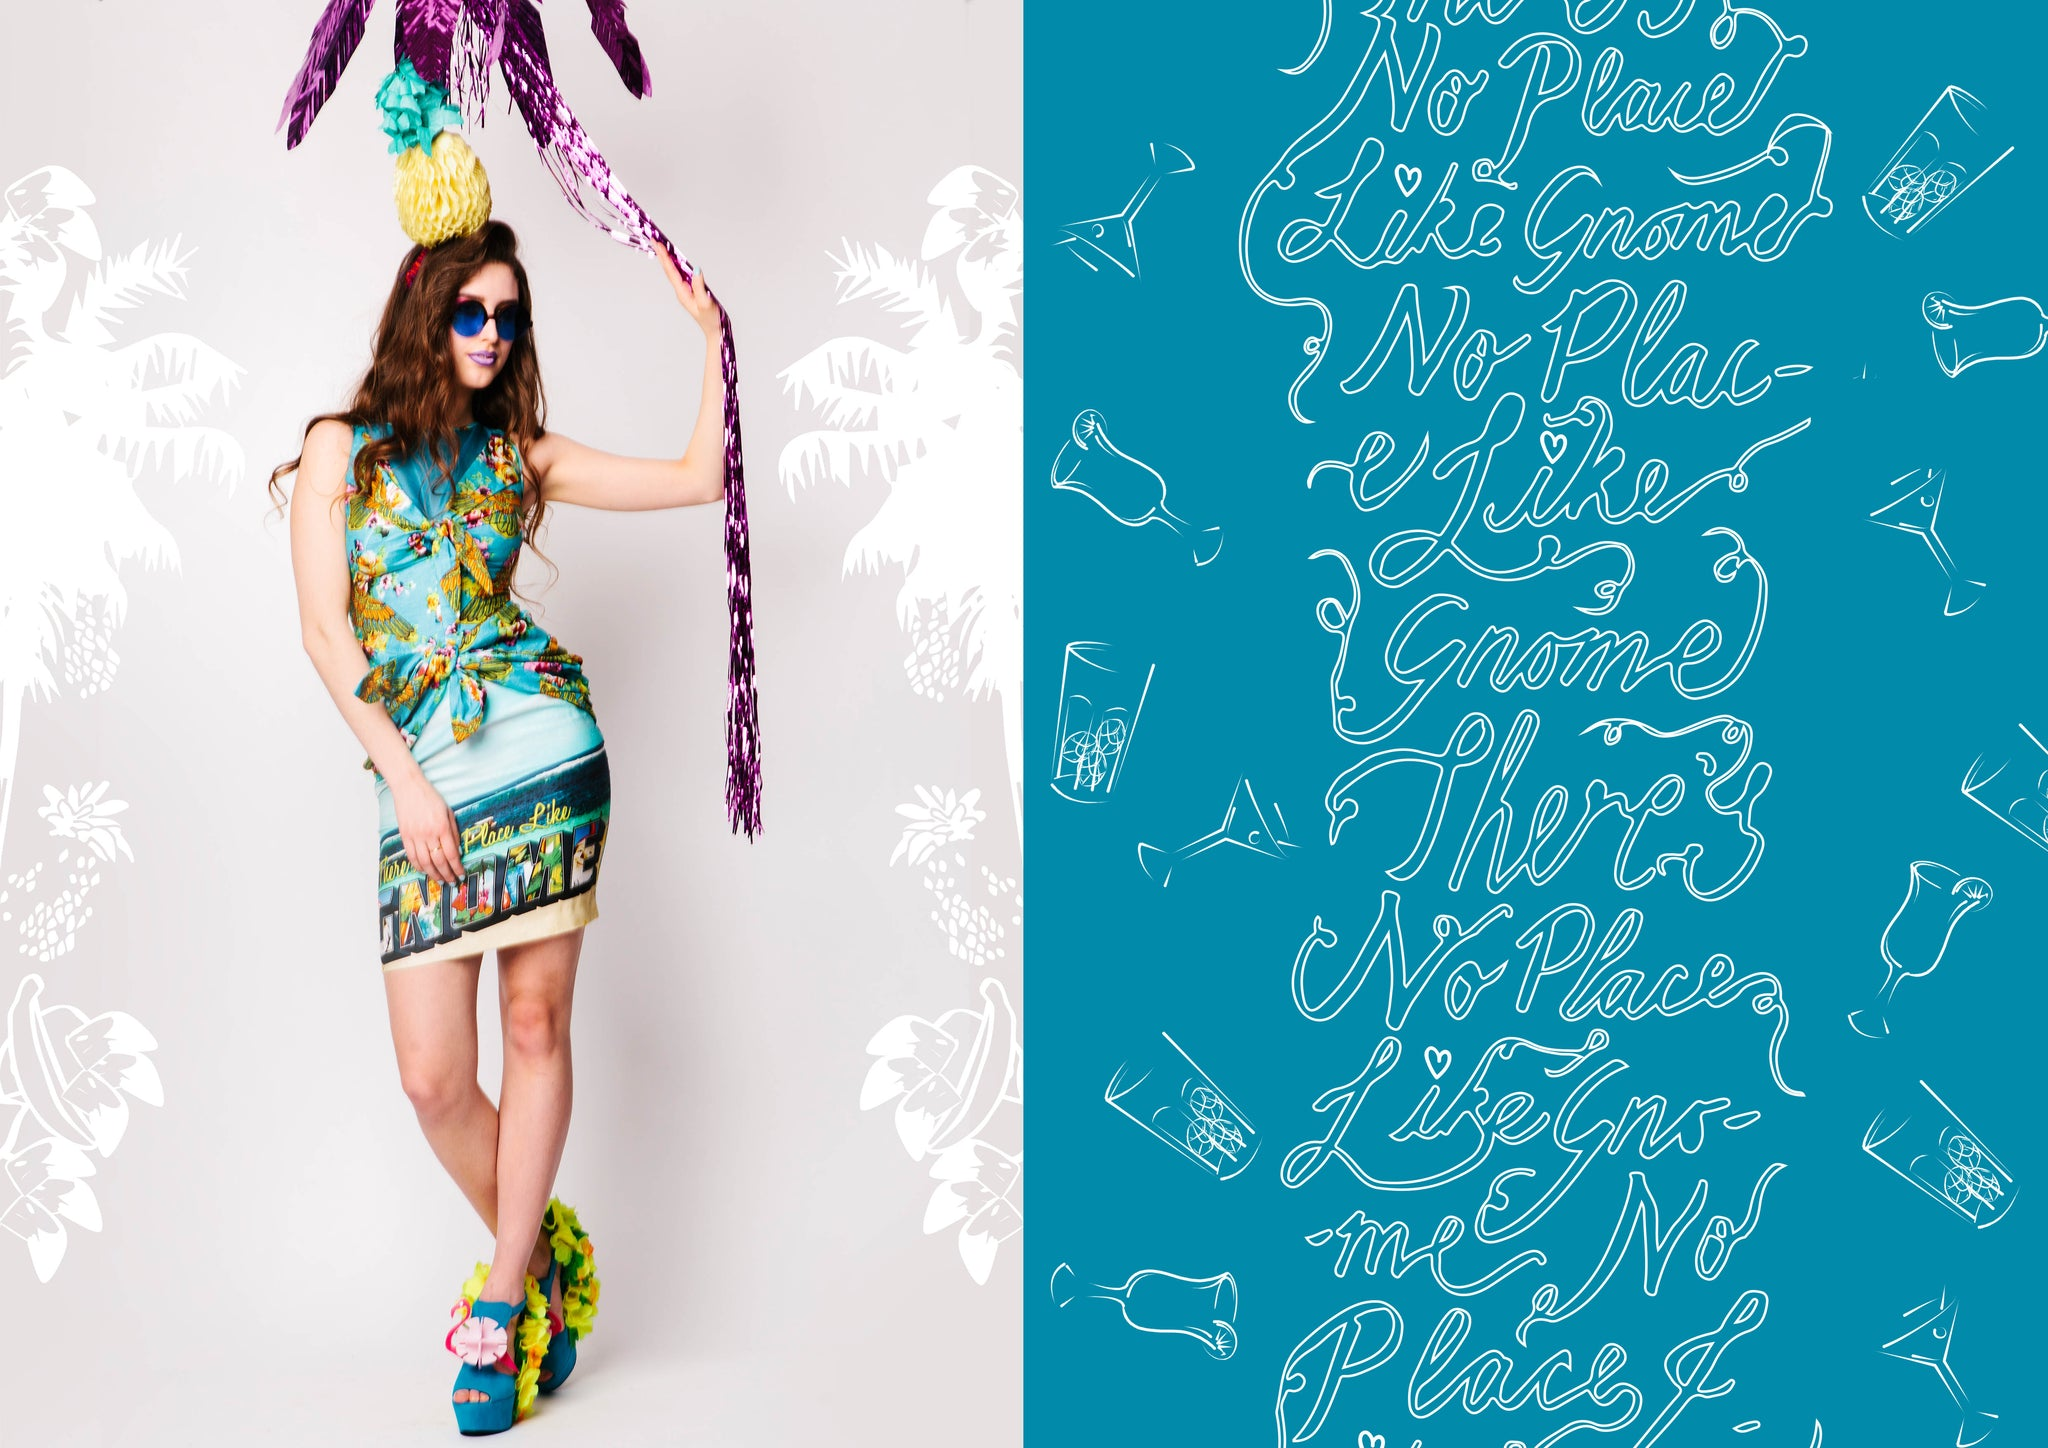 Tropical Festival Fashion Bikini Knot Dress with Beach Postcard Print - Ciara Monahan